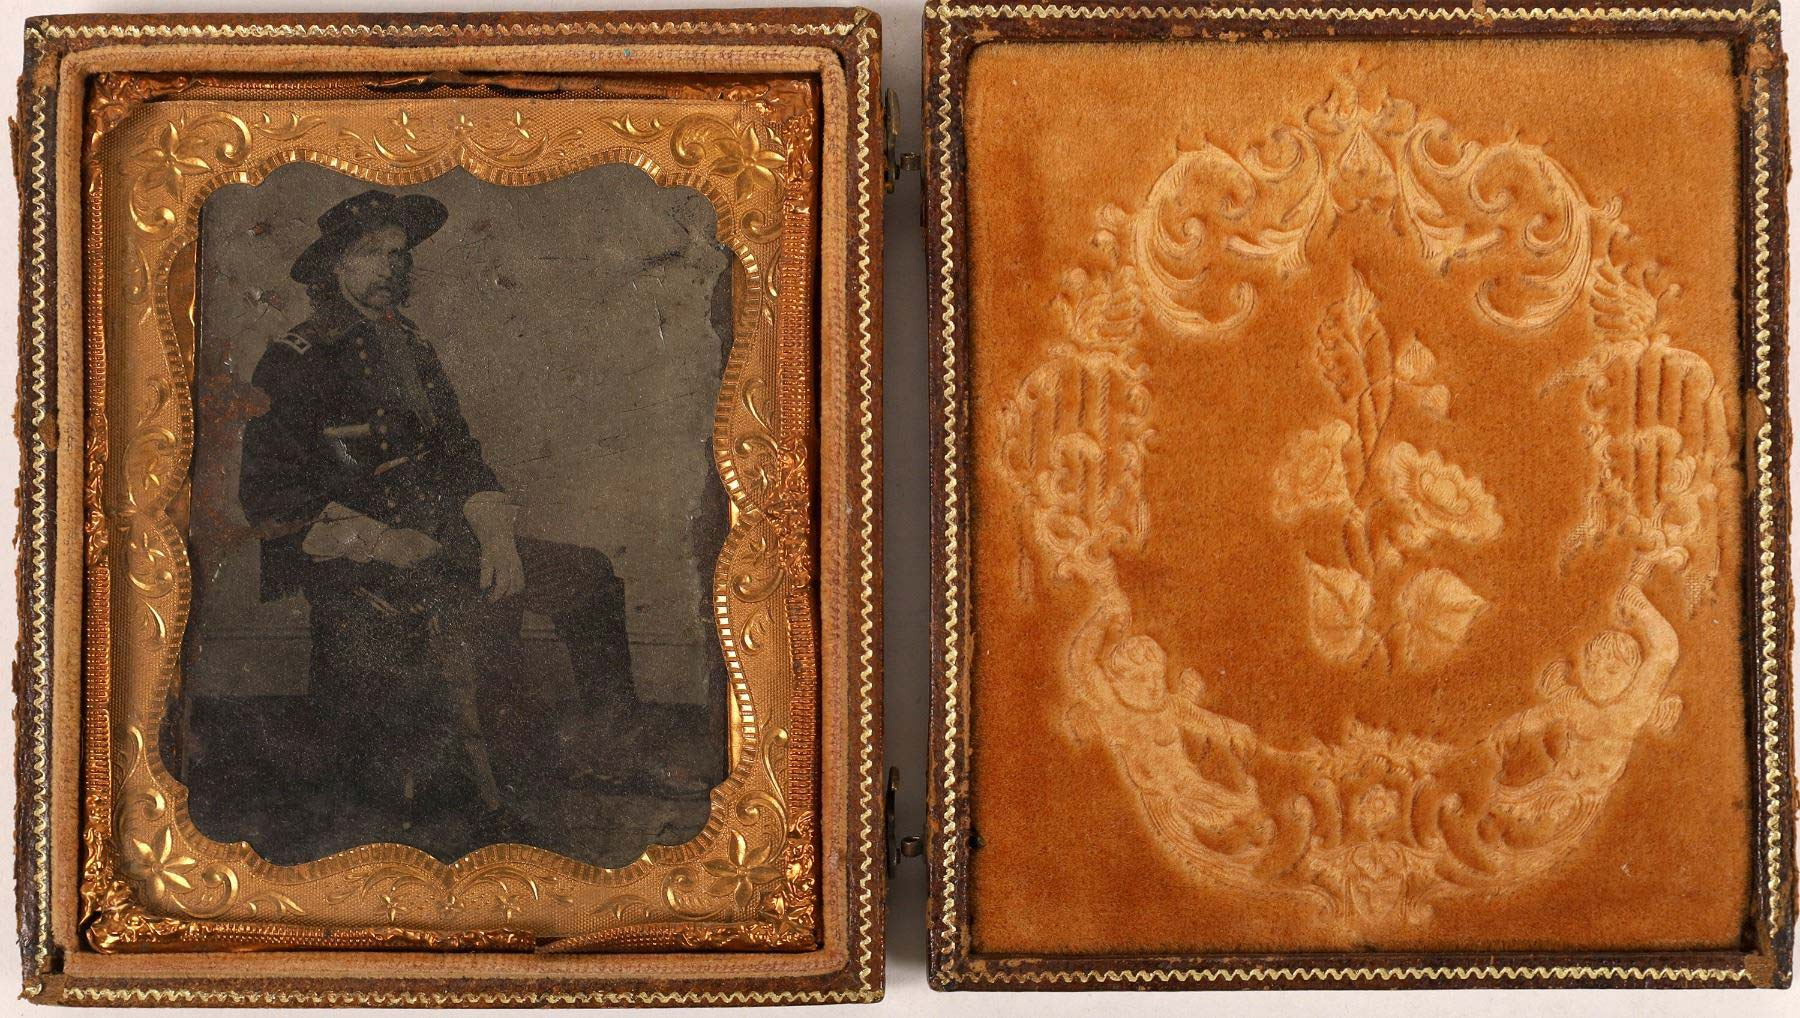 Gallery Report: 1865 Custer tintype nets $5,750 at Holabird sale